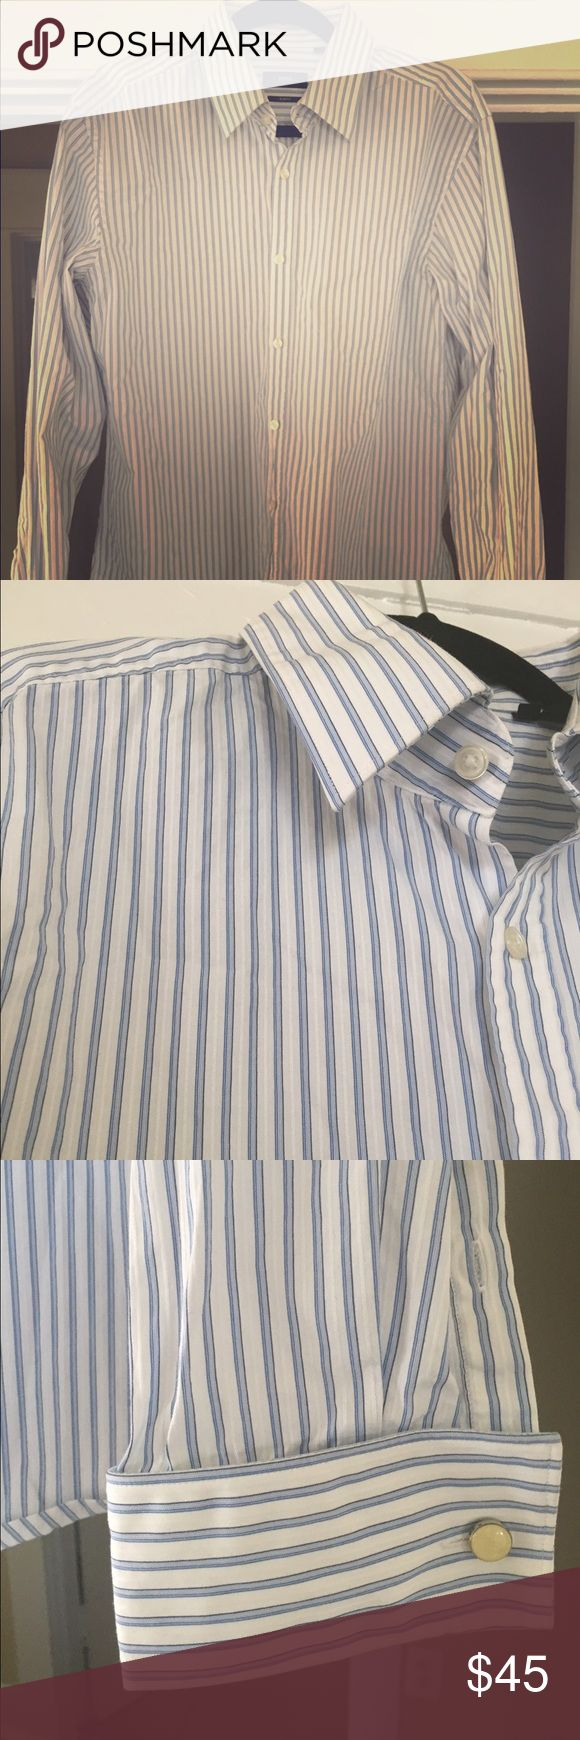 Men's Hugo Boss Slim Fit Dress Shirt Like new, gently used slim fit Hugo Boss dress shirt. Blue, and pearly white stripes. No rips tears or stains! Beautiful shirt.  Medium, slim fit. Hugo Boss Shirts Dress Shirts